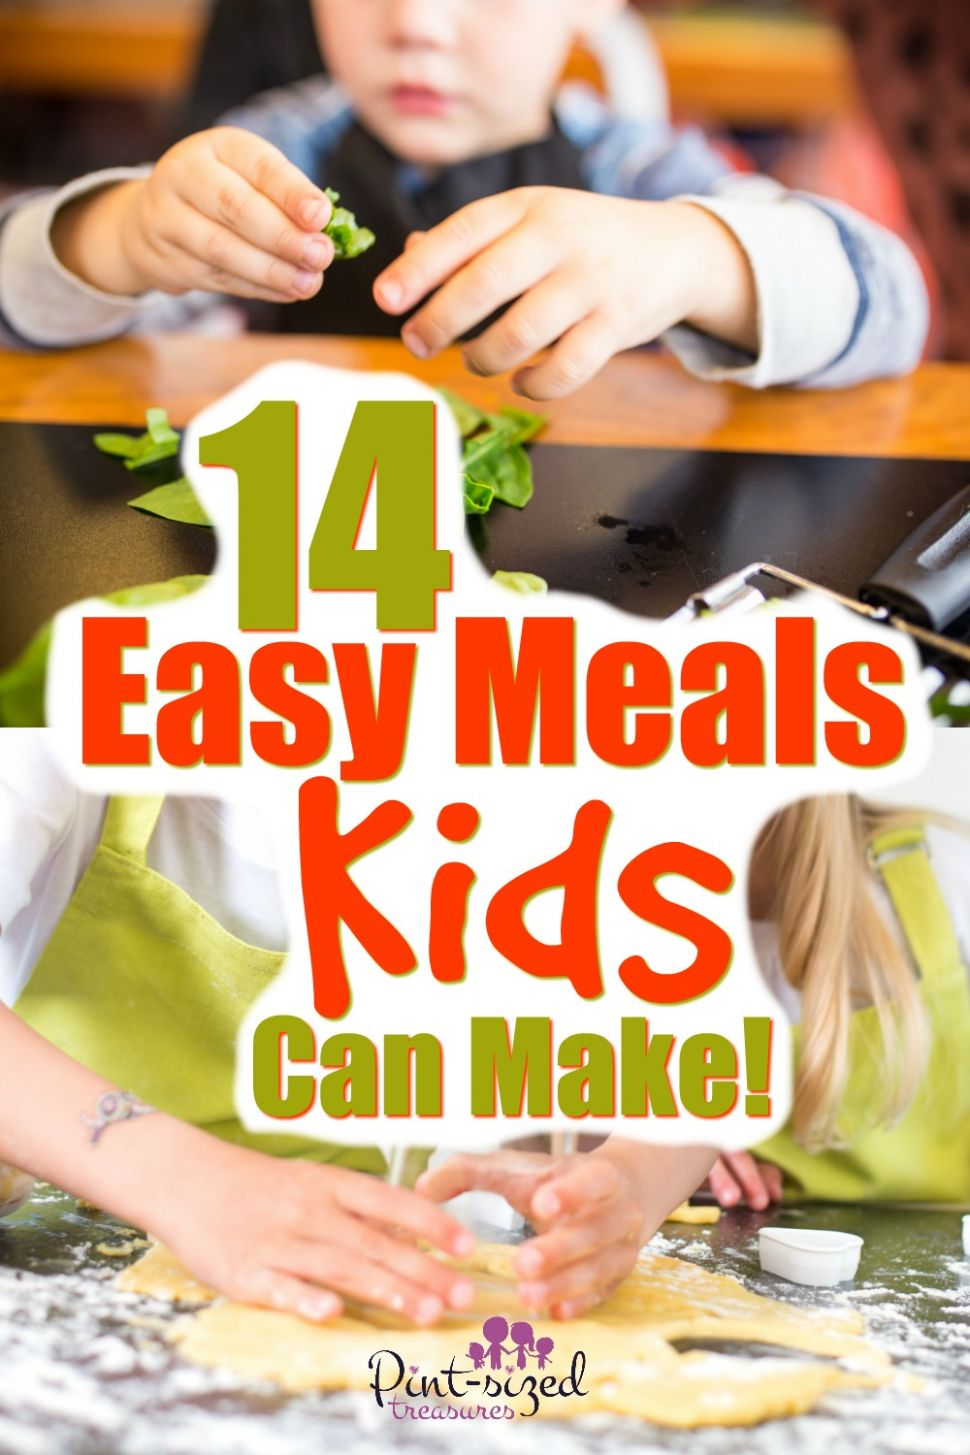 11 Easy Meals Kids Can Make - Easy Recipes For Kids